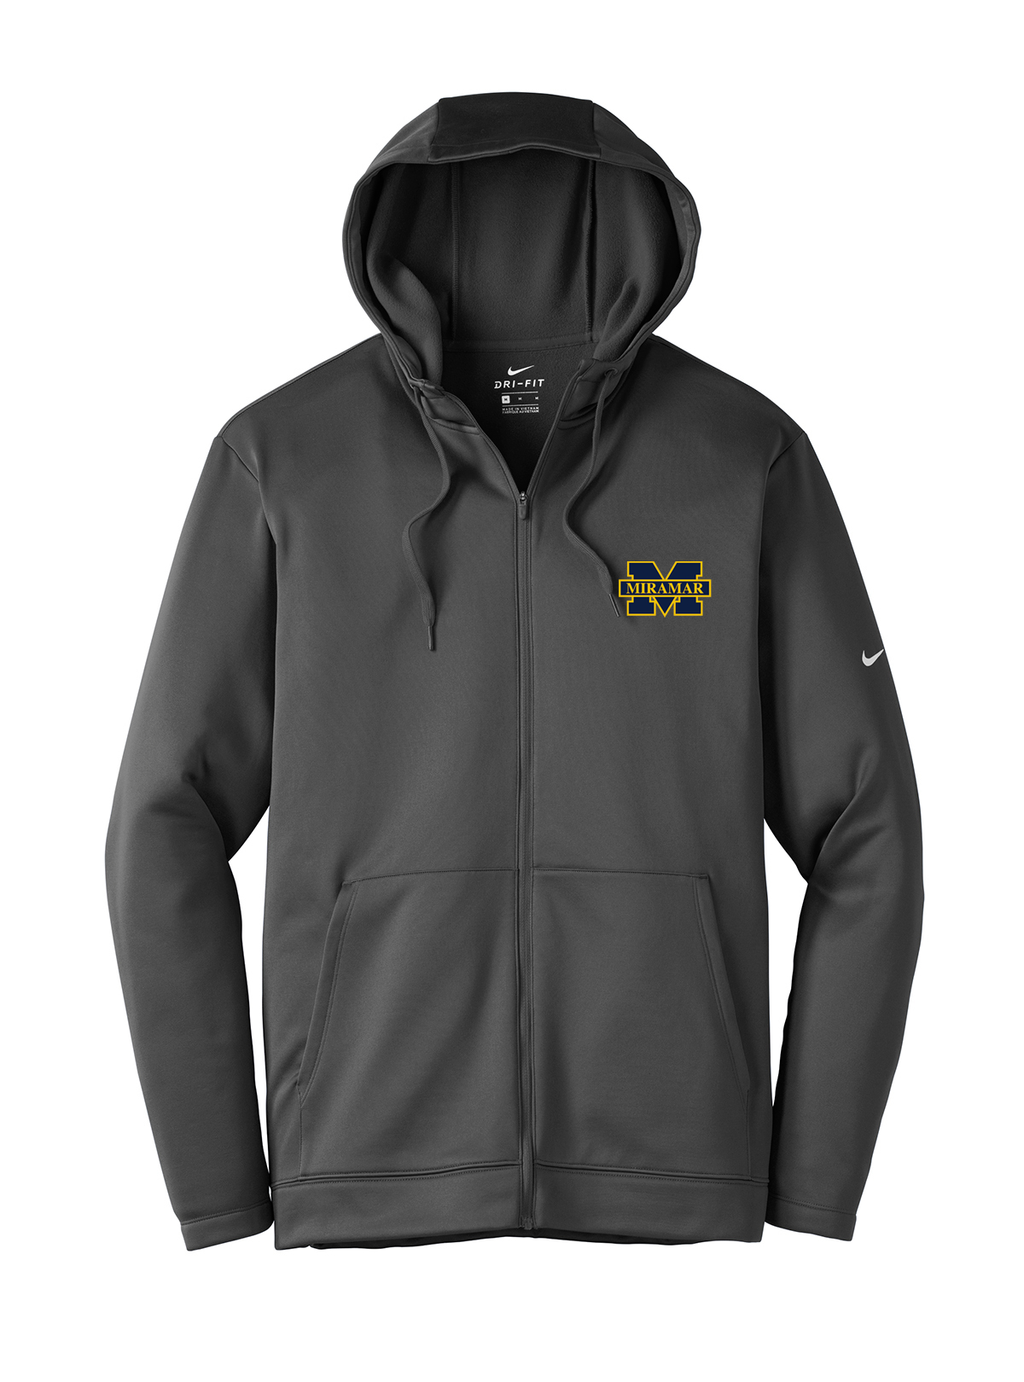 Miramar Wolverines Football Nike Therma-FIT Full Zip Hoodie